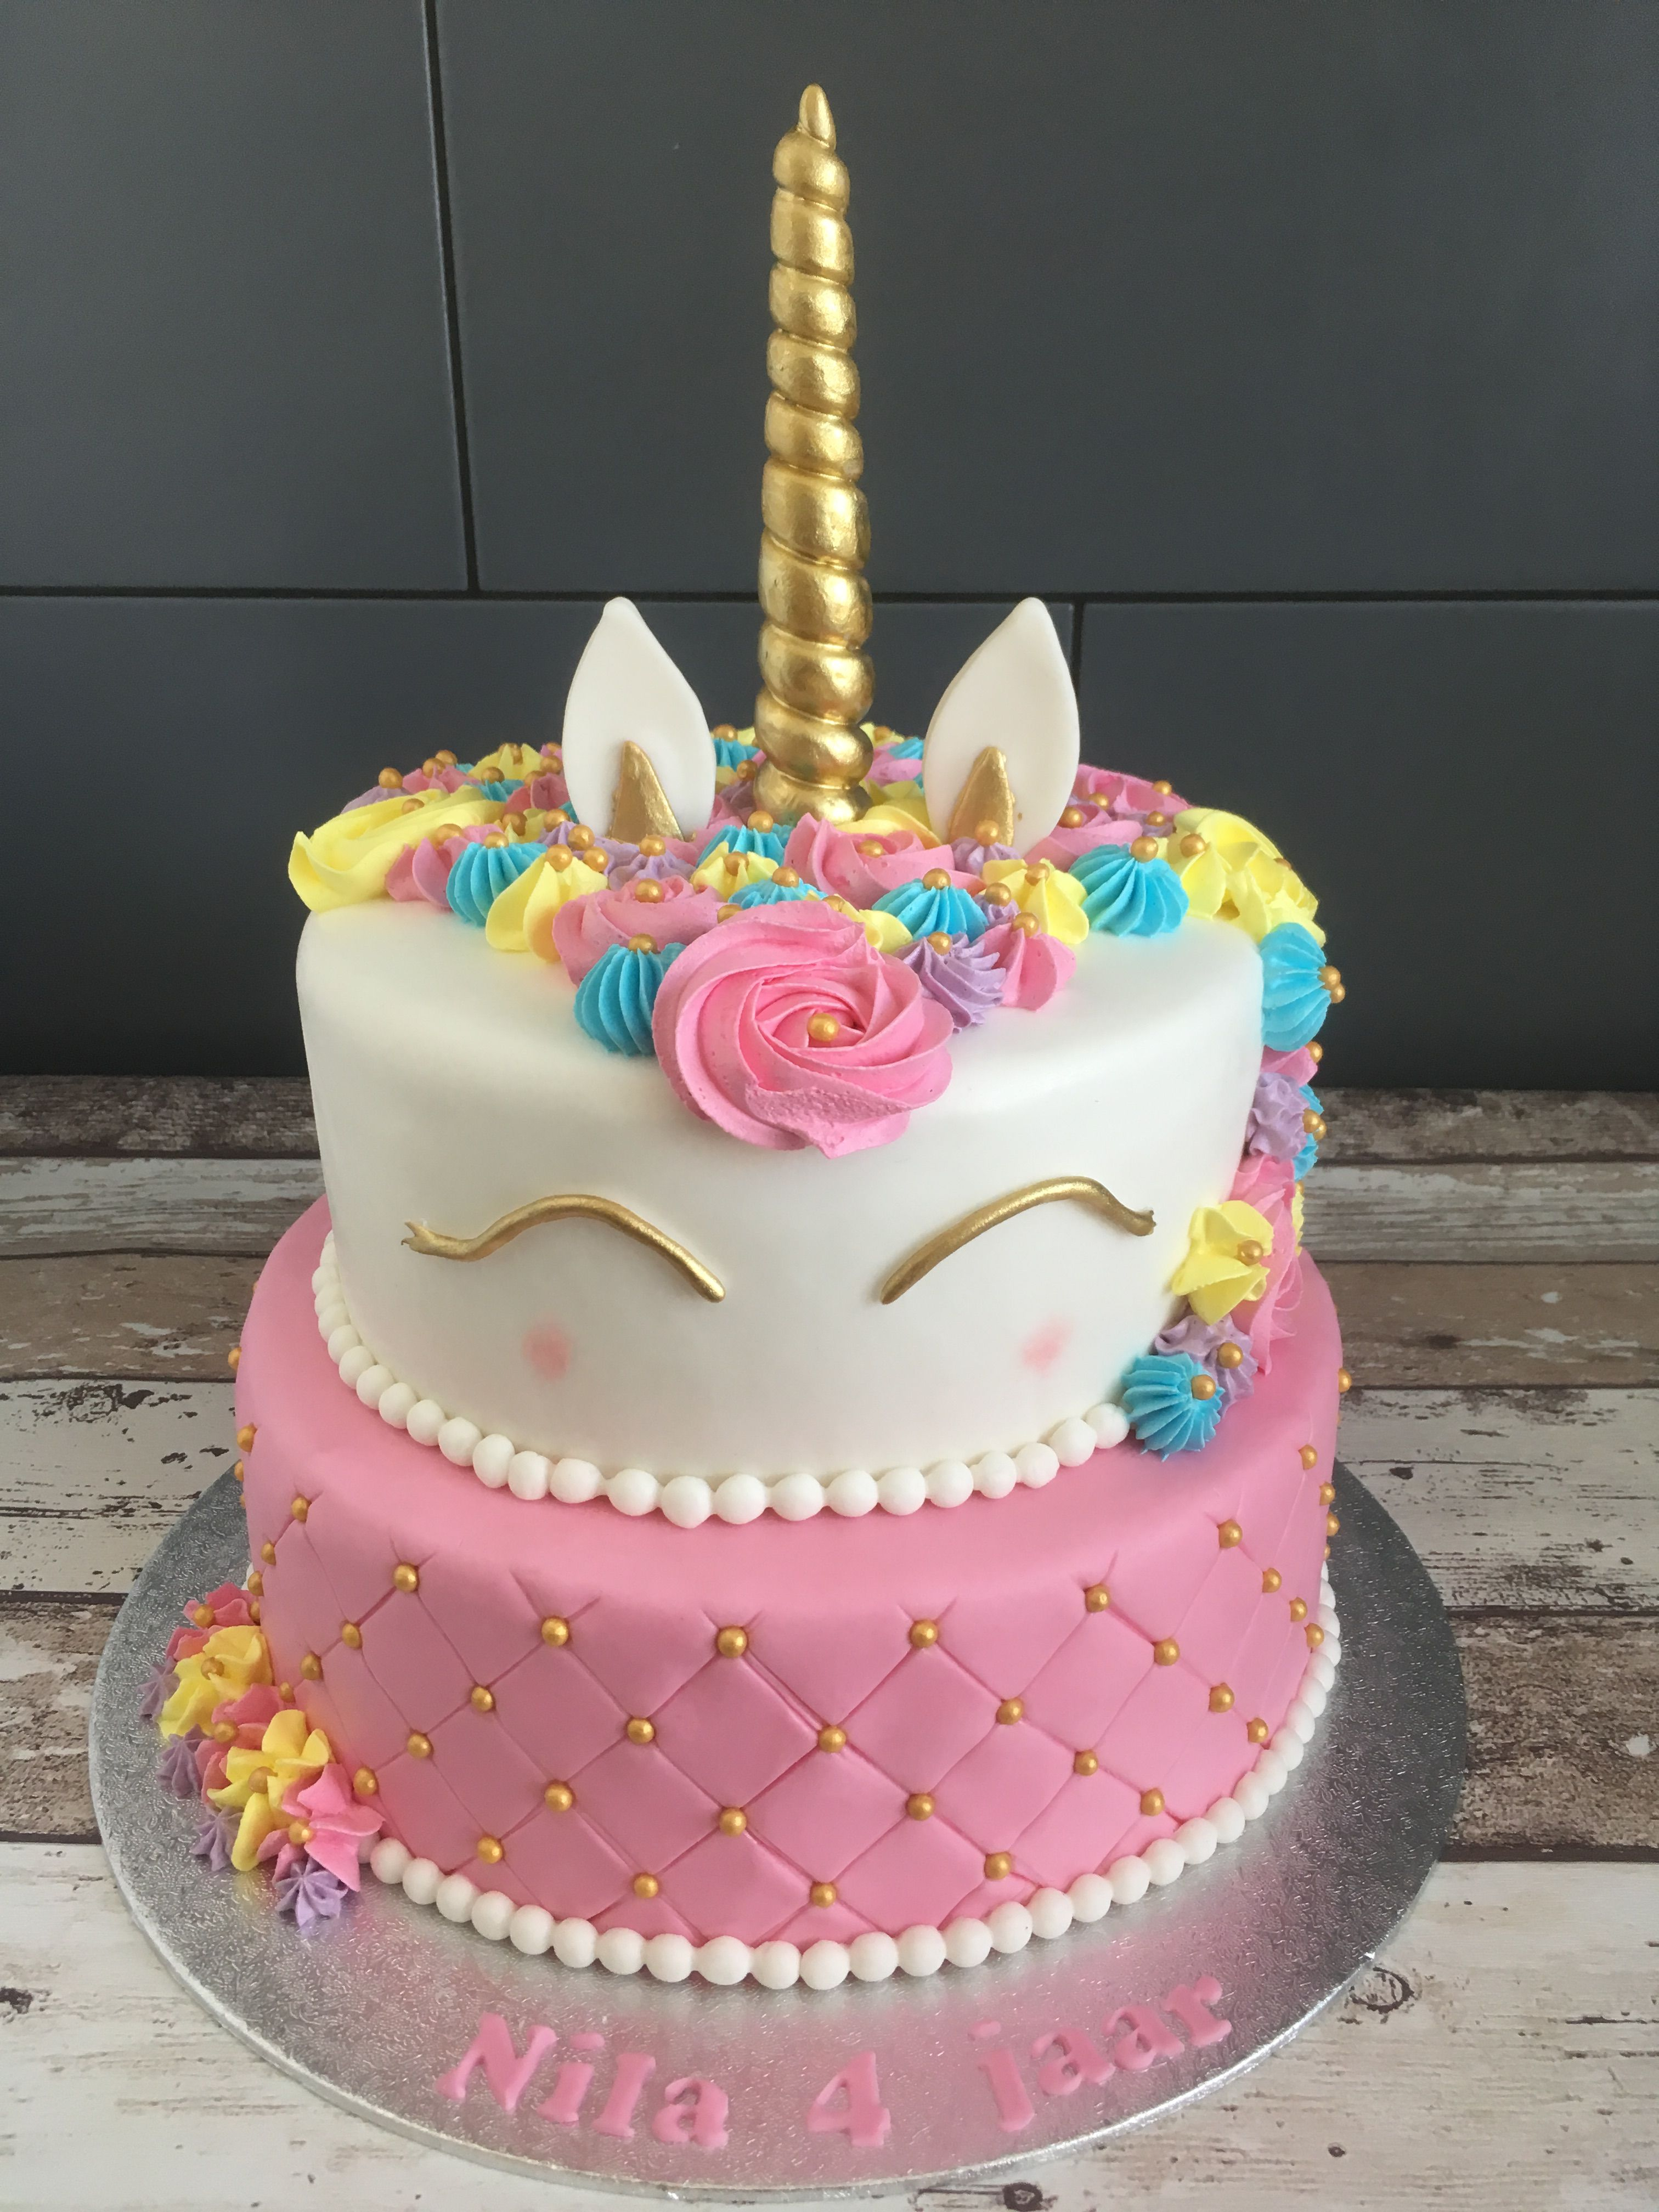 2 Tier Fondant Unicorn Cake